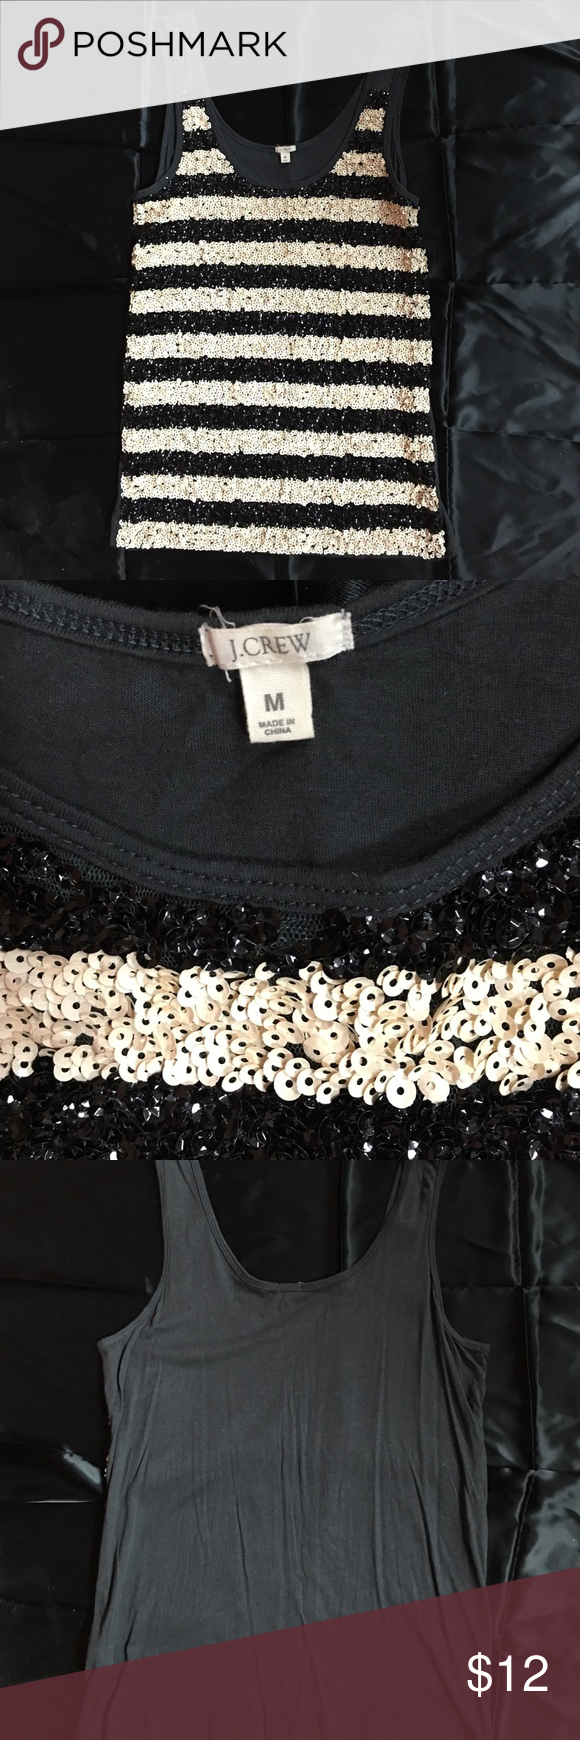 J Crew Black & Ivory Sequined Tank Size Medium J Crew sequined tank size medium. Sequins are only on front of tank.  Open to offers J. Crew Tops Tank Tops